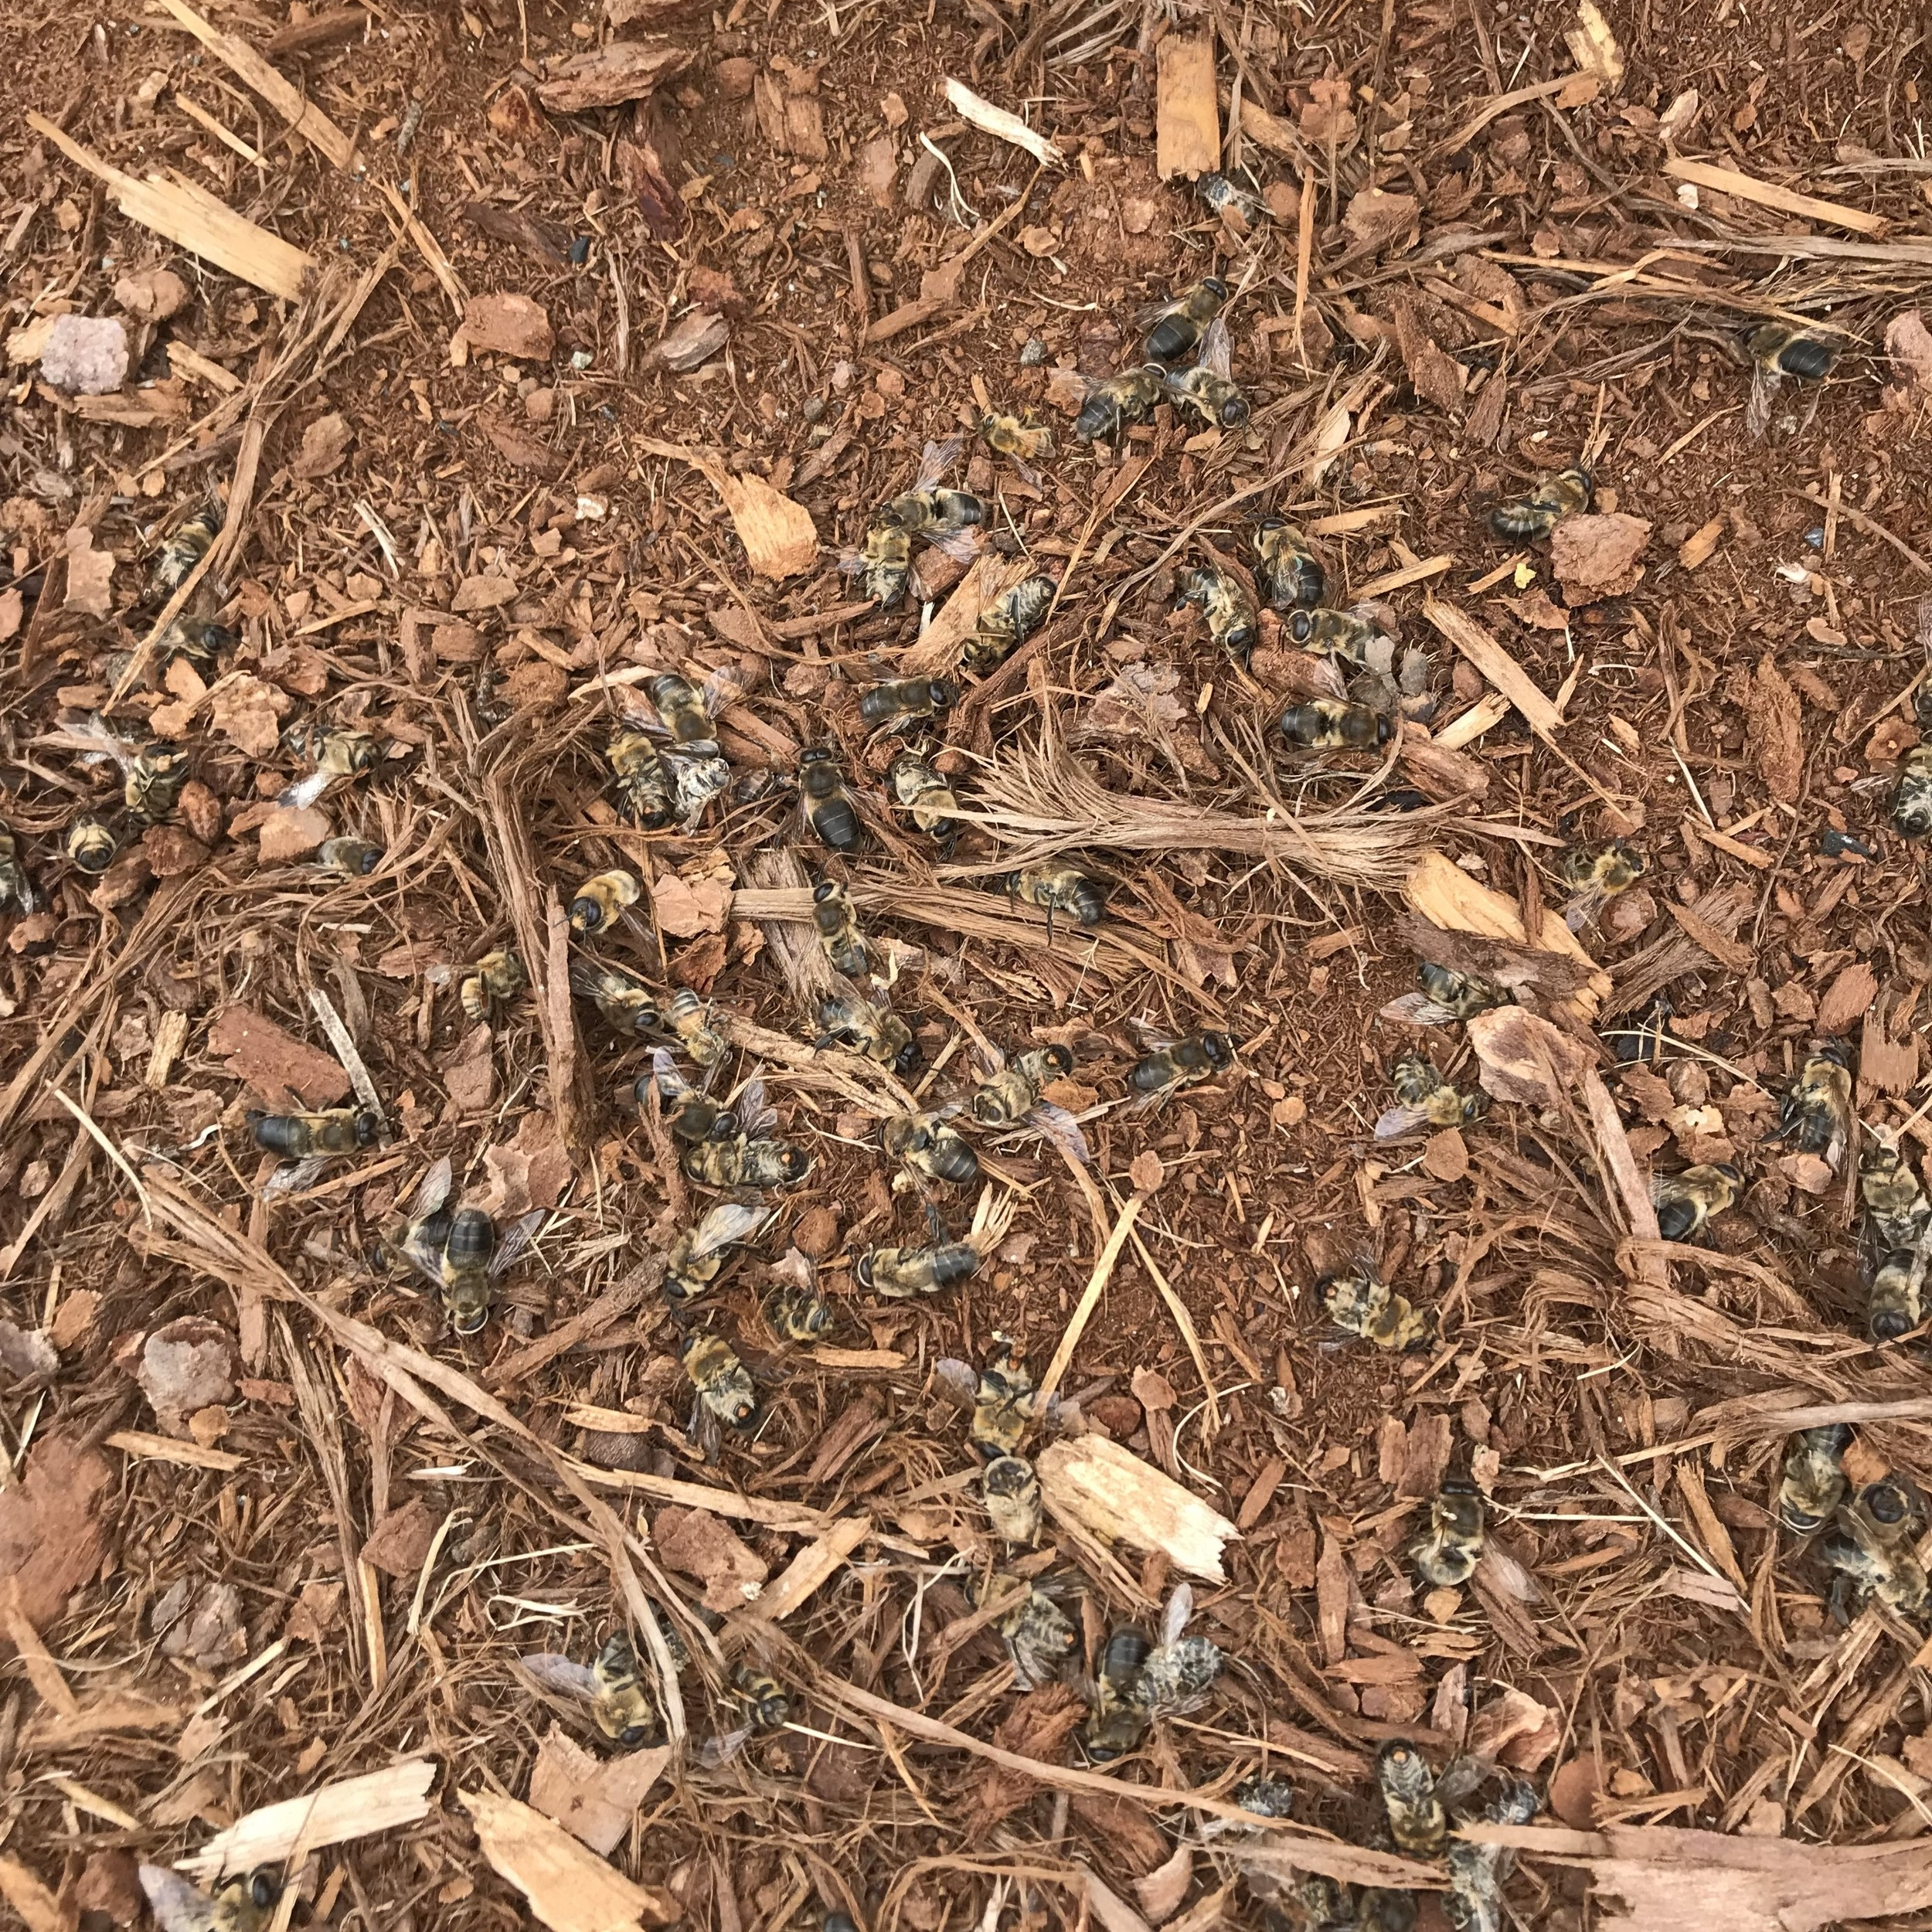 A pile of dead bees we found right in front of on of our hives!